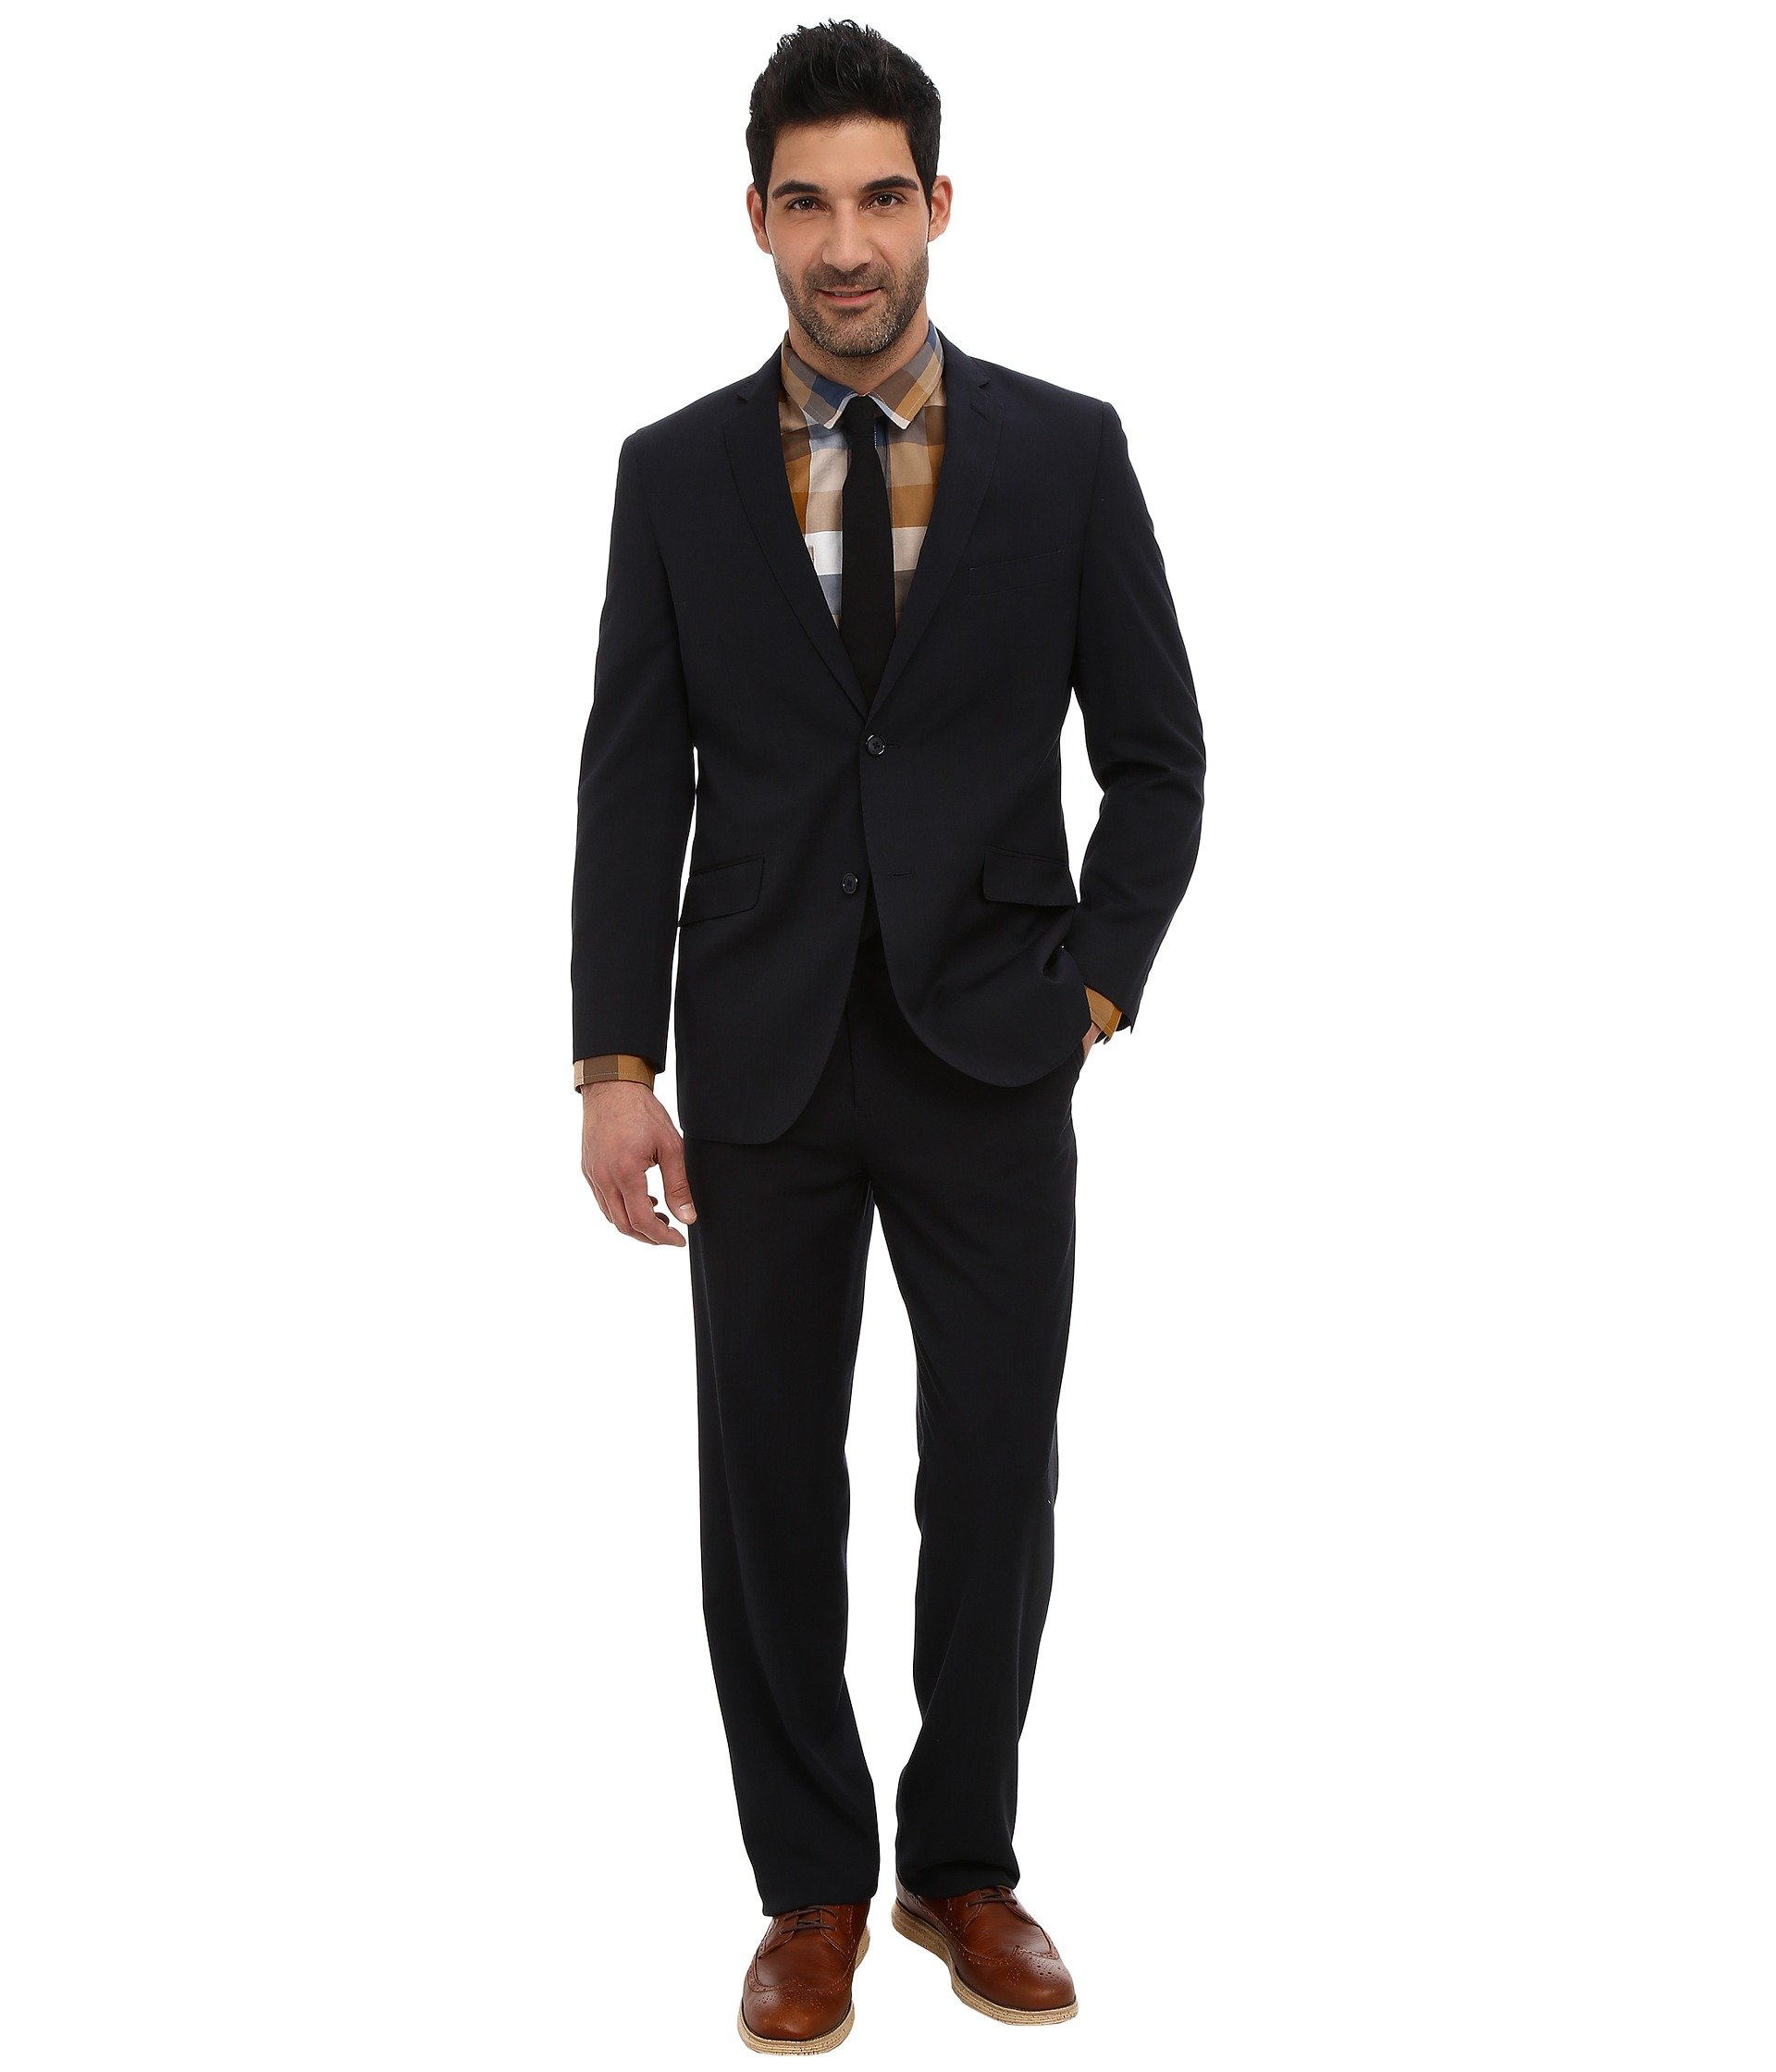 Vestido para Hombre U.S. POLO ASSN. 2 Button Solid Nested Suit  + U.S. POLO ASSN. en VeoyCompro.net